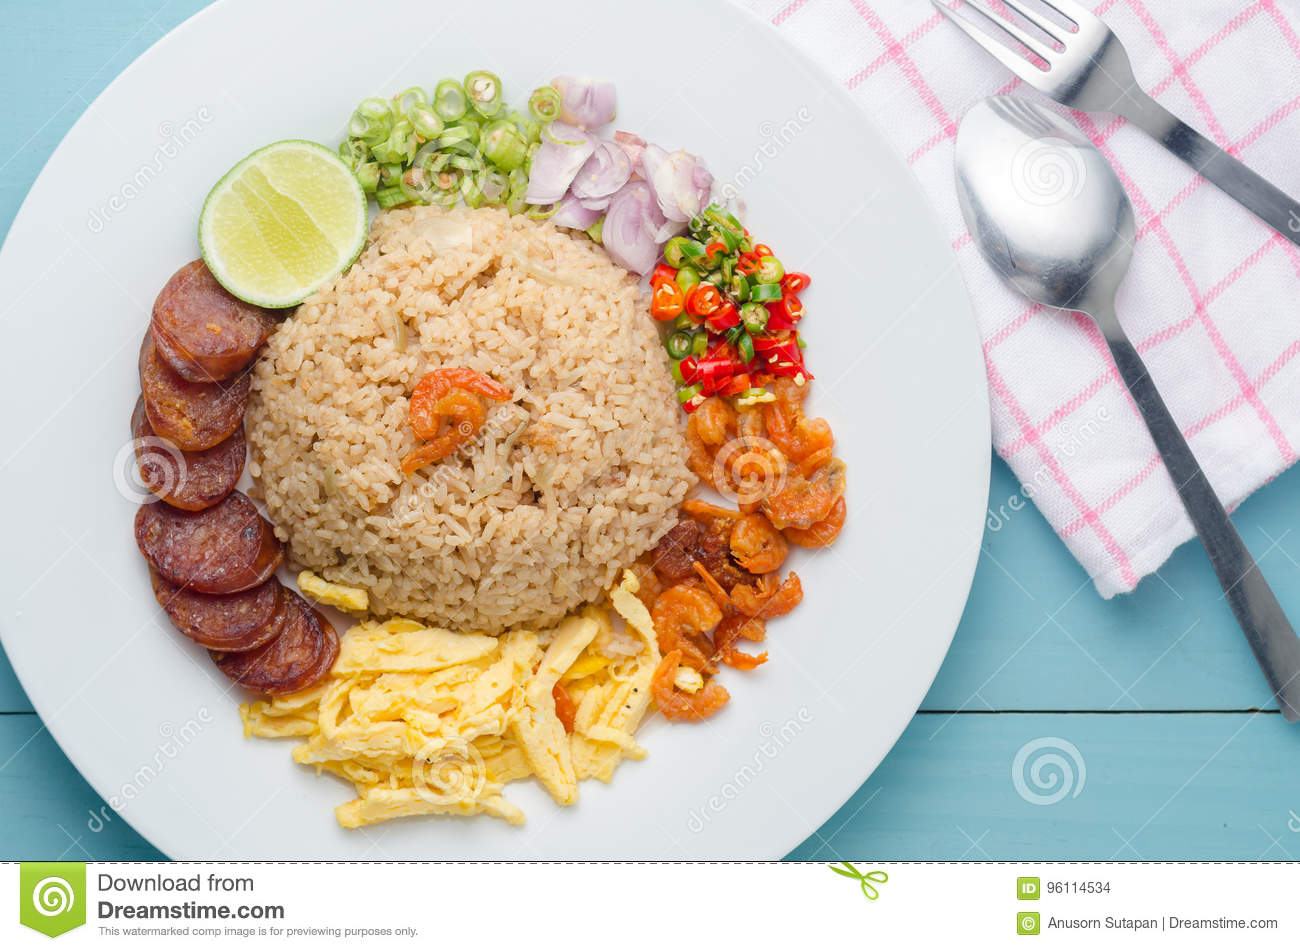 Rice Seasoned with Shrimp Paste, Thai food on white dish over wooden table.